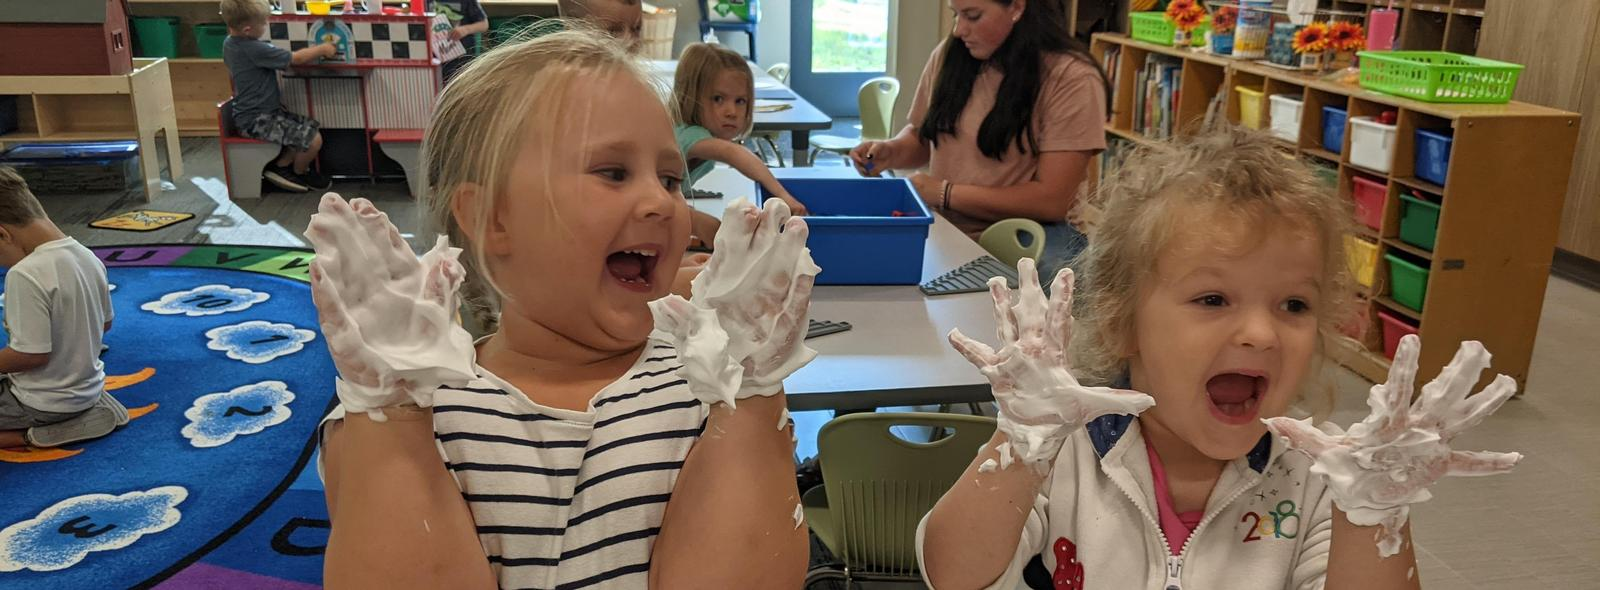 students laughing with shaving cream on their hands